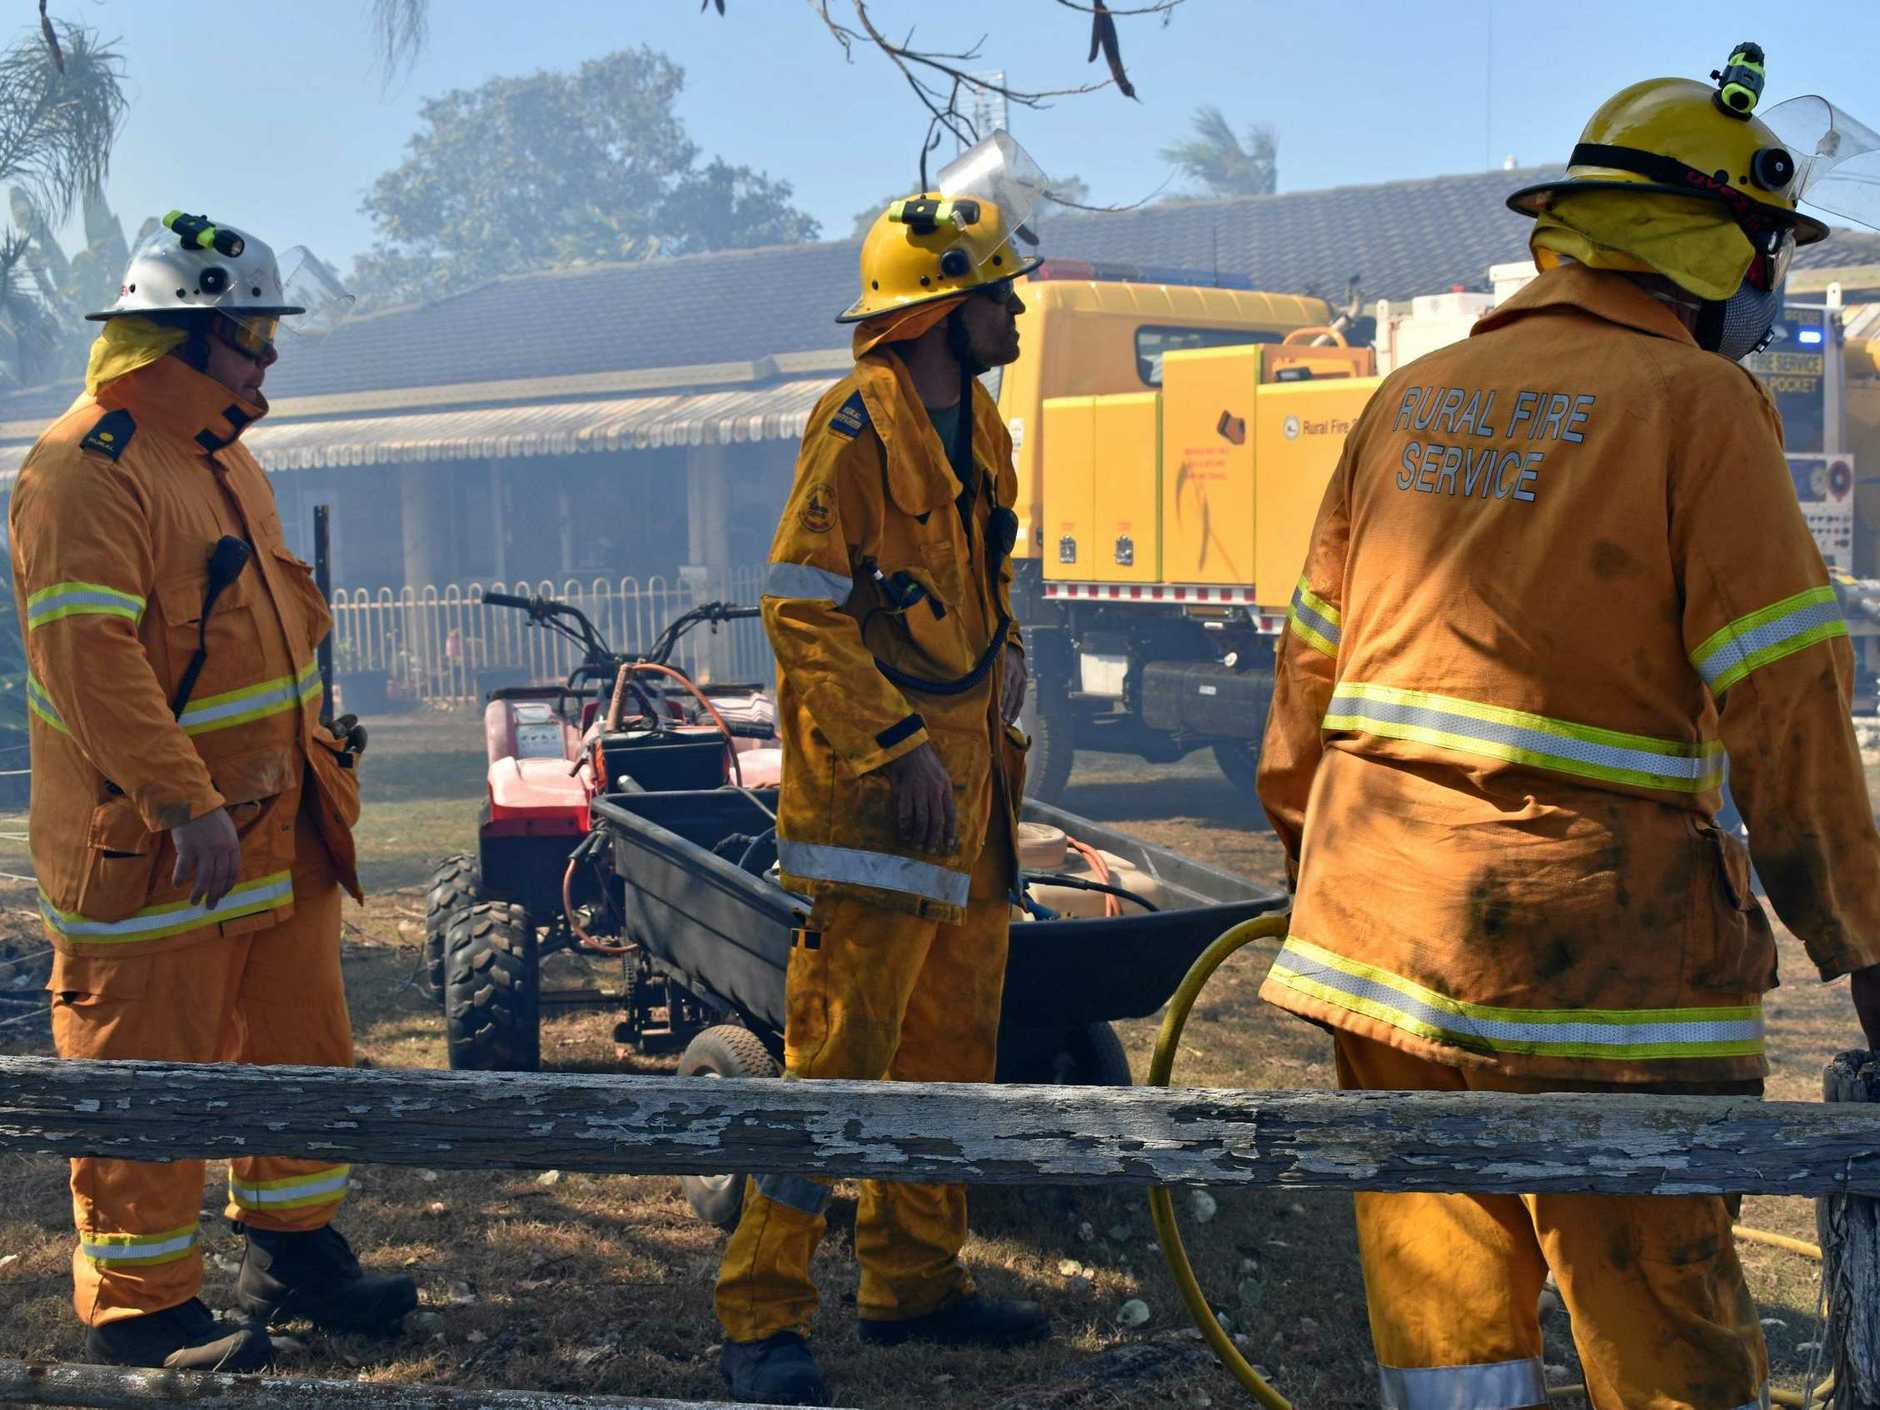 Firefighters work to contain the blaze at Tamaree.